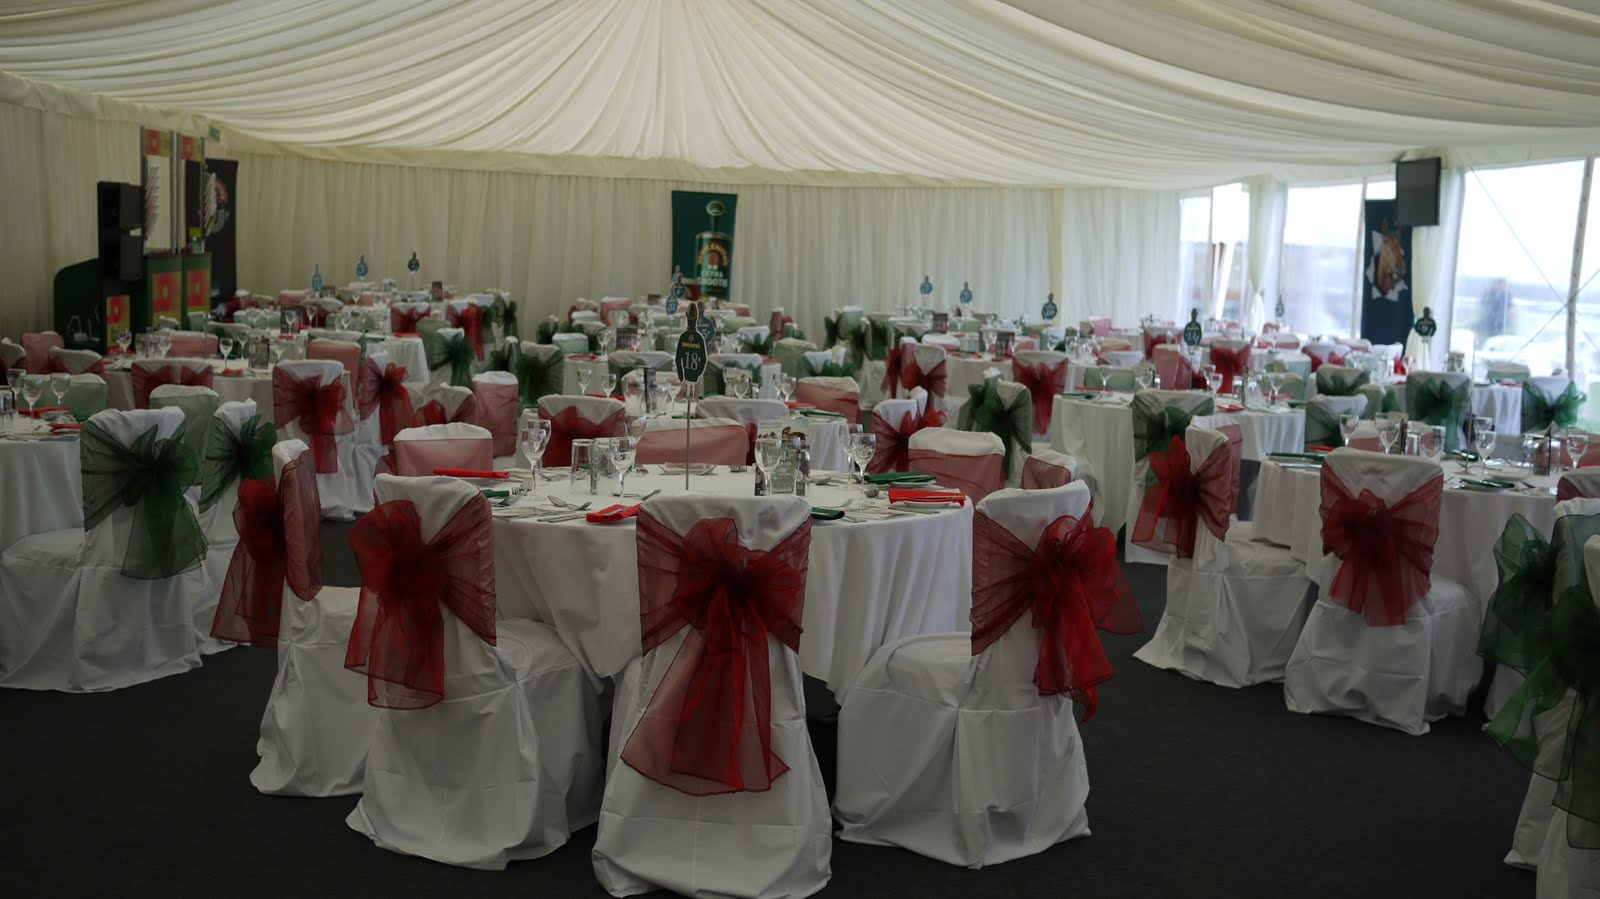 Wedding Chair Covers Newcastle Upon Tyne Antique Oak Dining Styles Simply Bows And Racing Splendour